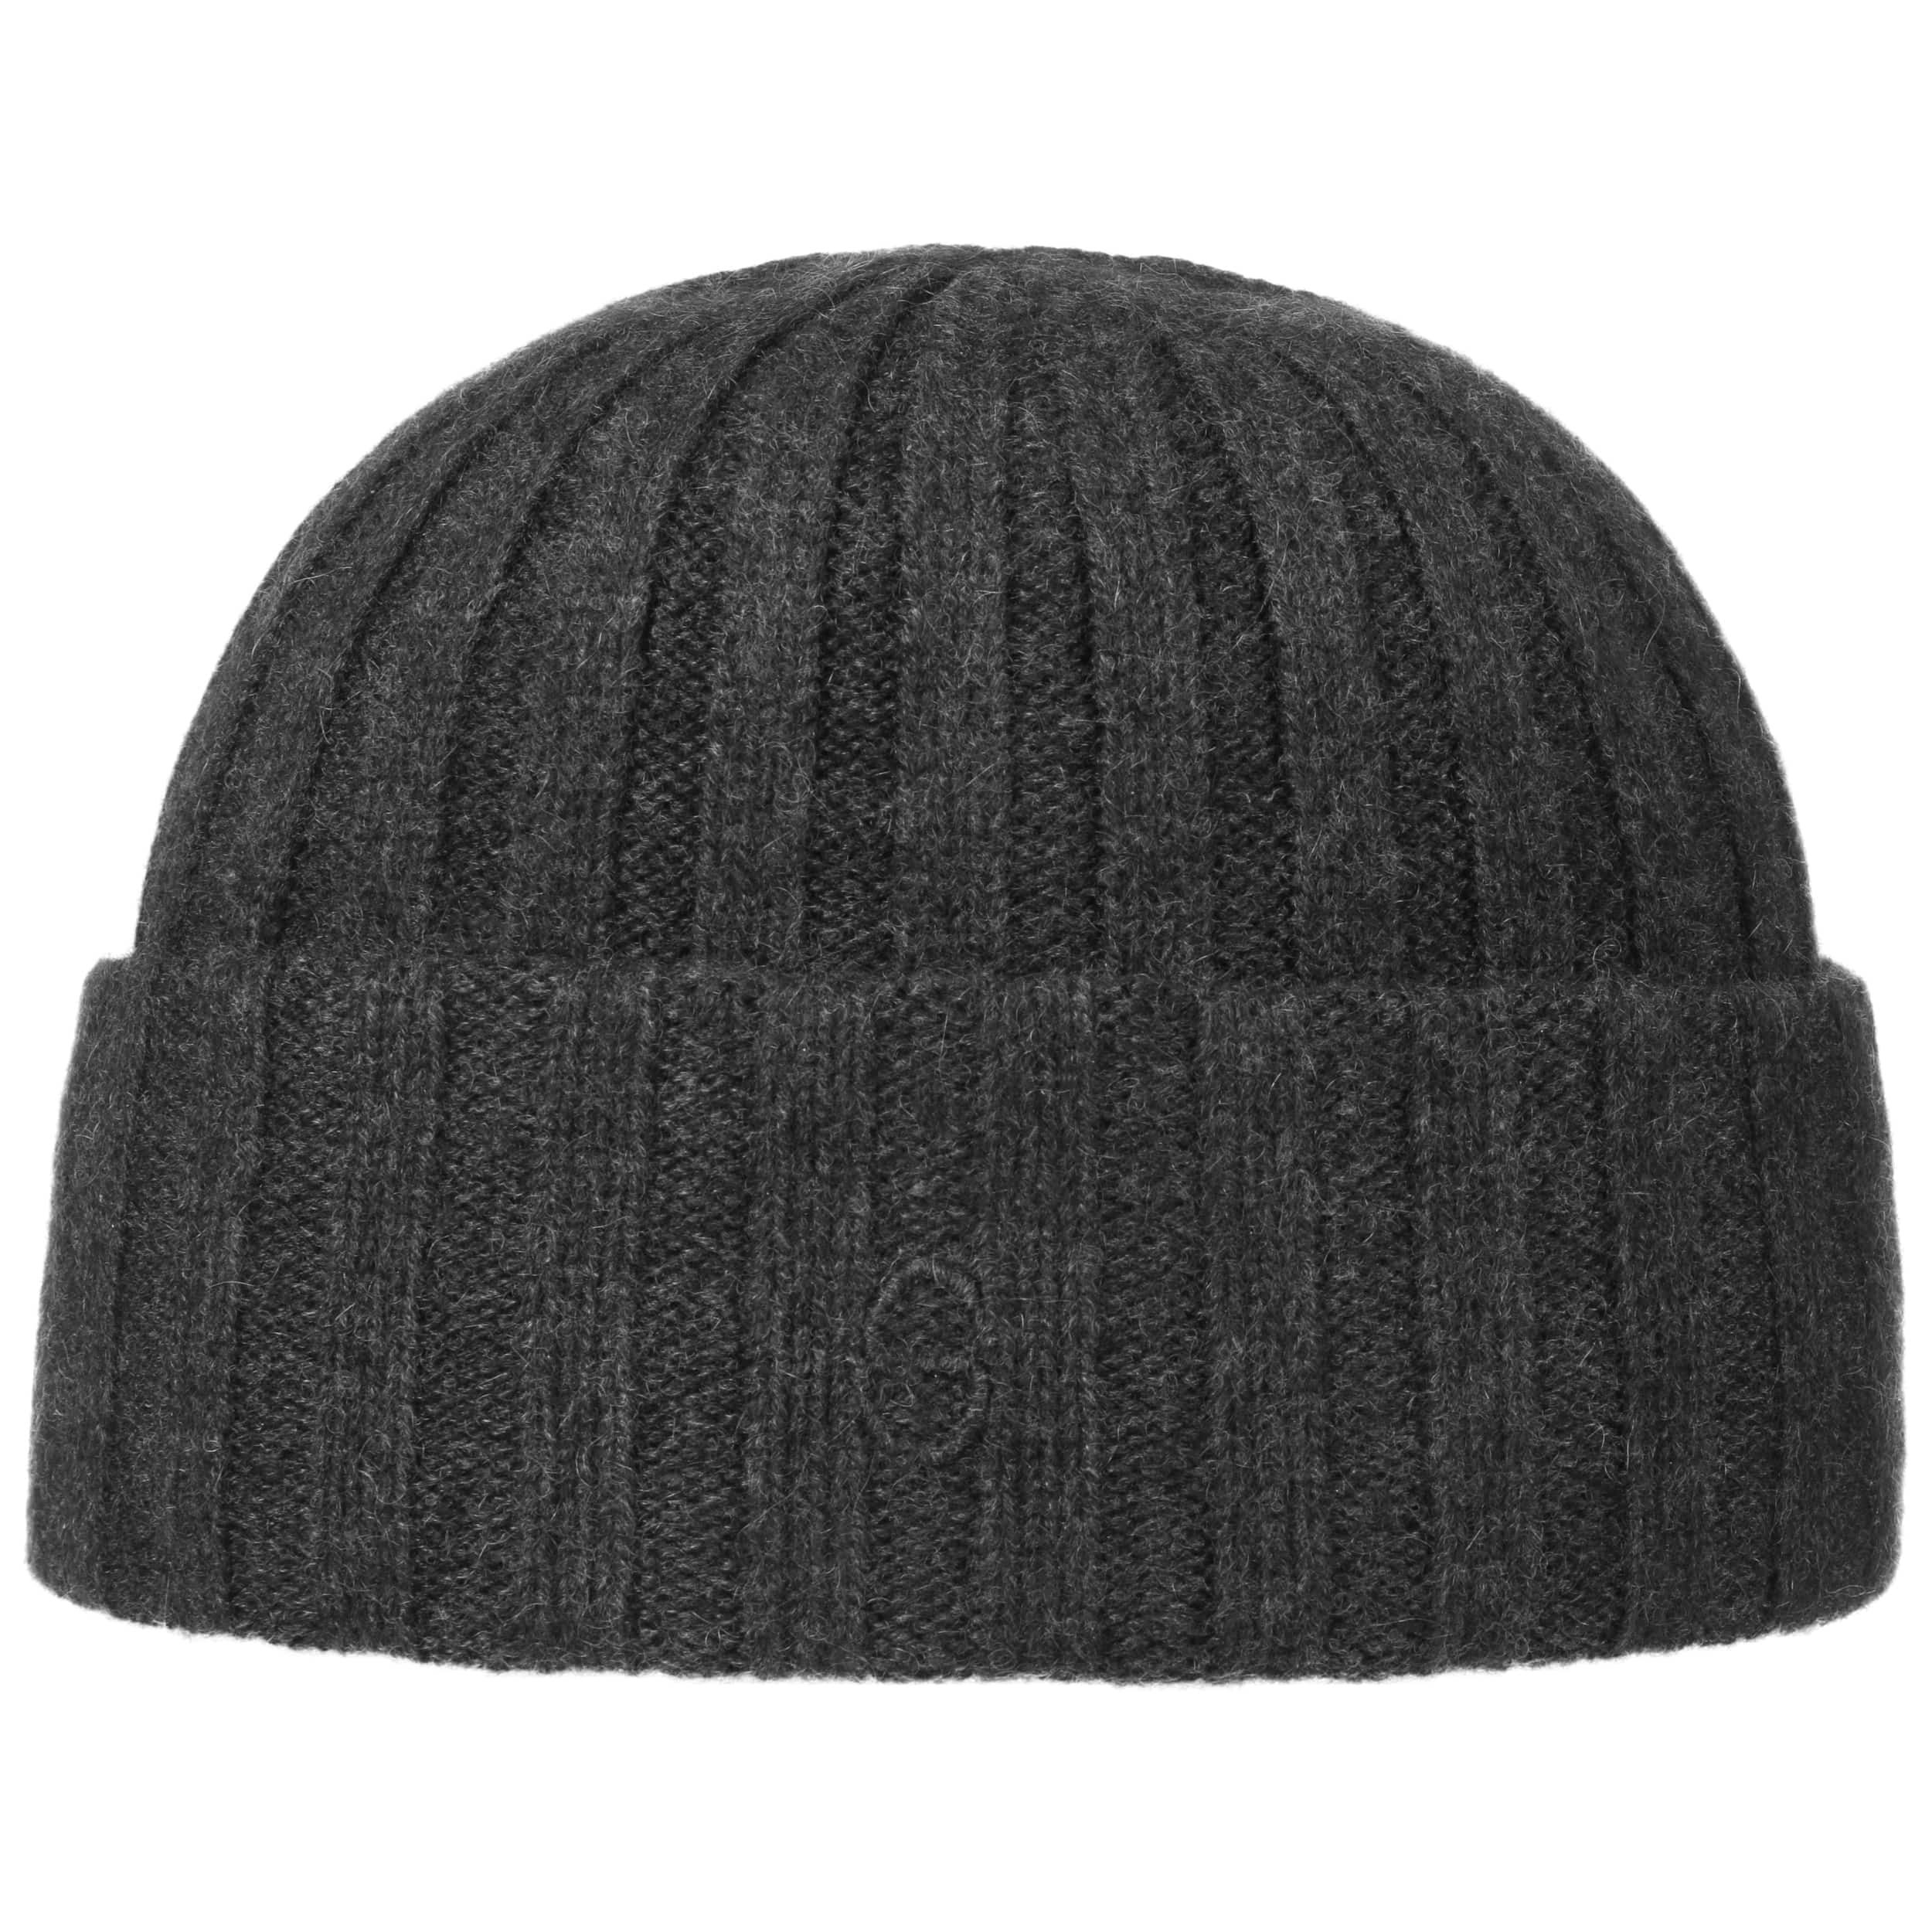 Surth Cashmere Knit Hat anthracite